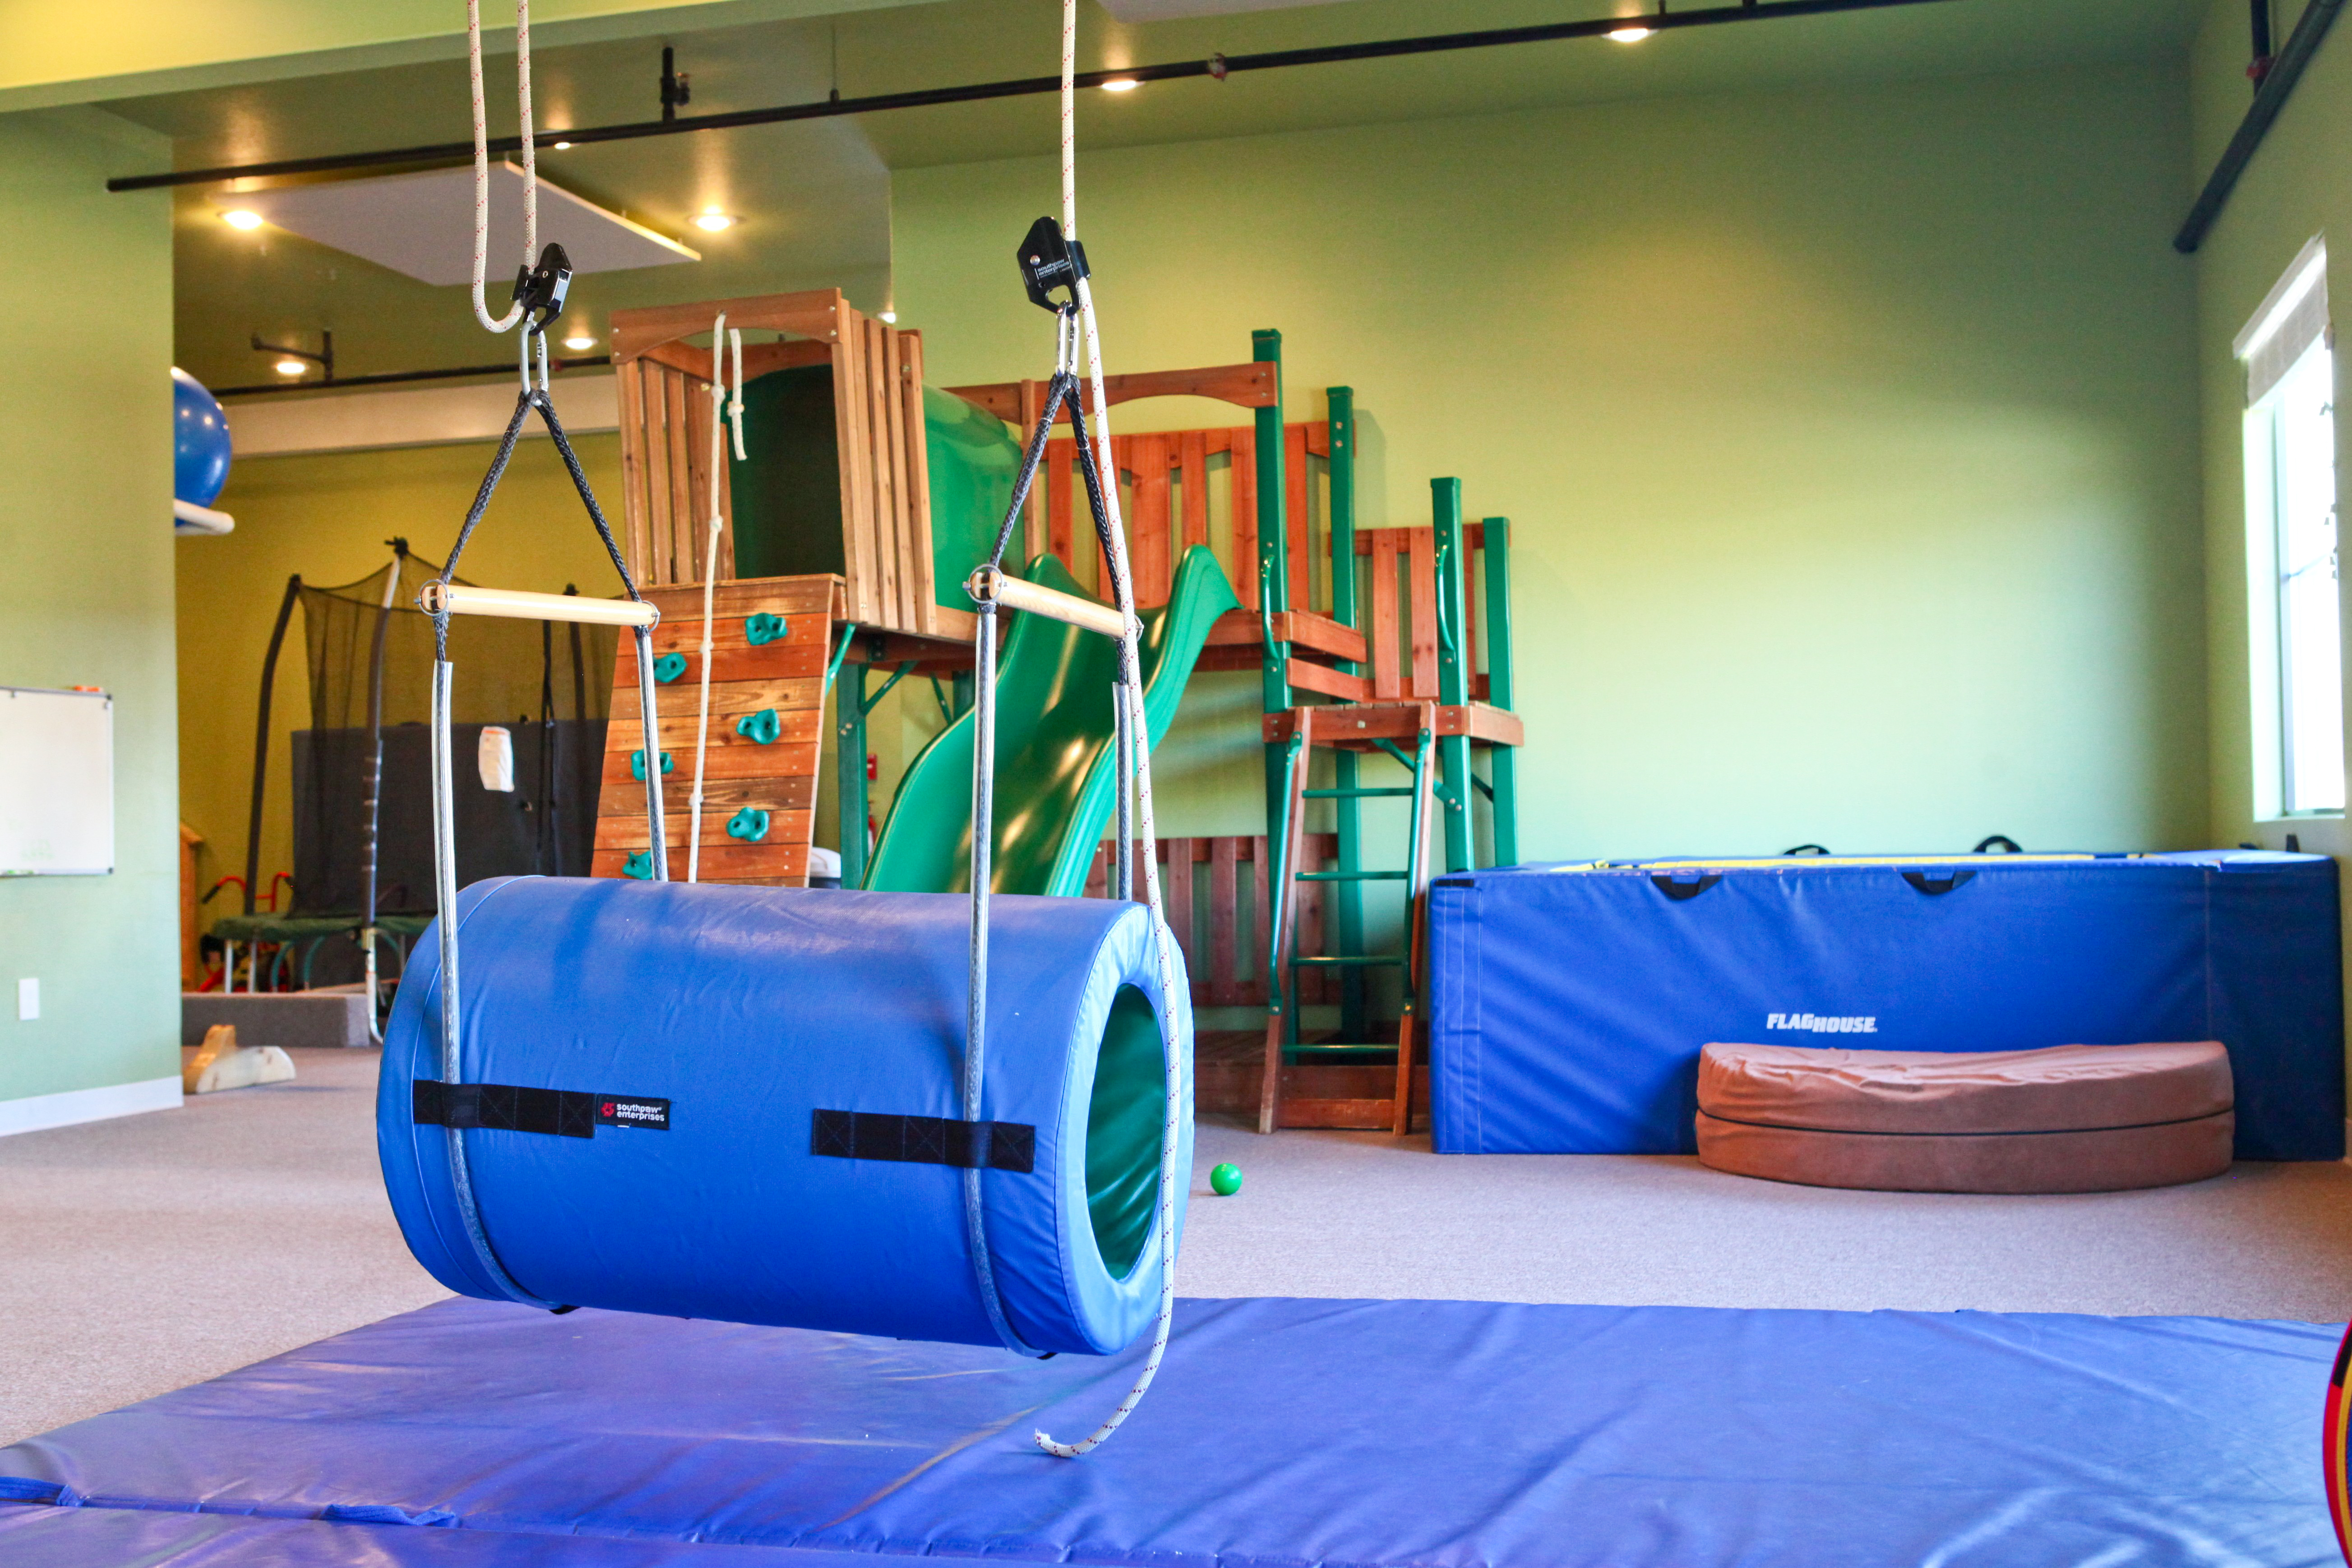 Equipment pediatric physical therapy - All Aboard Pediatric Therapy Nwa